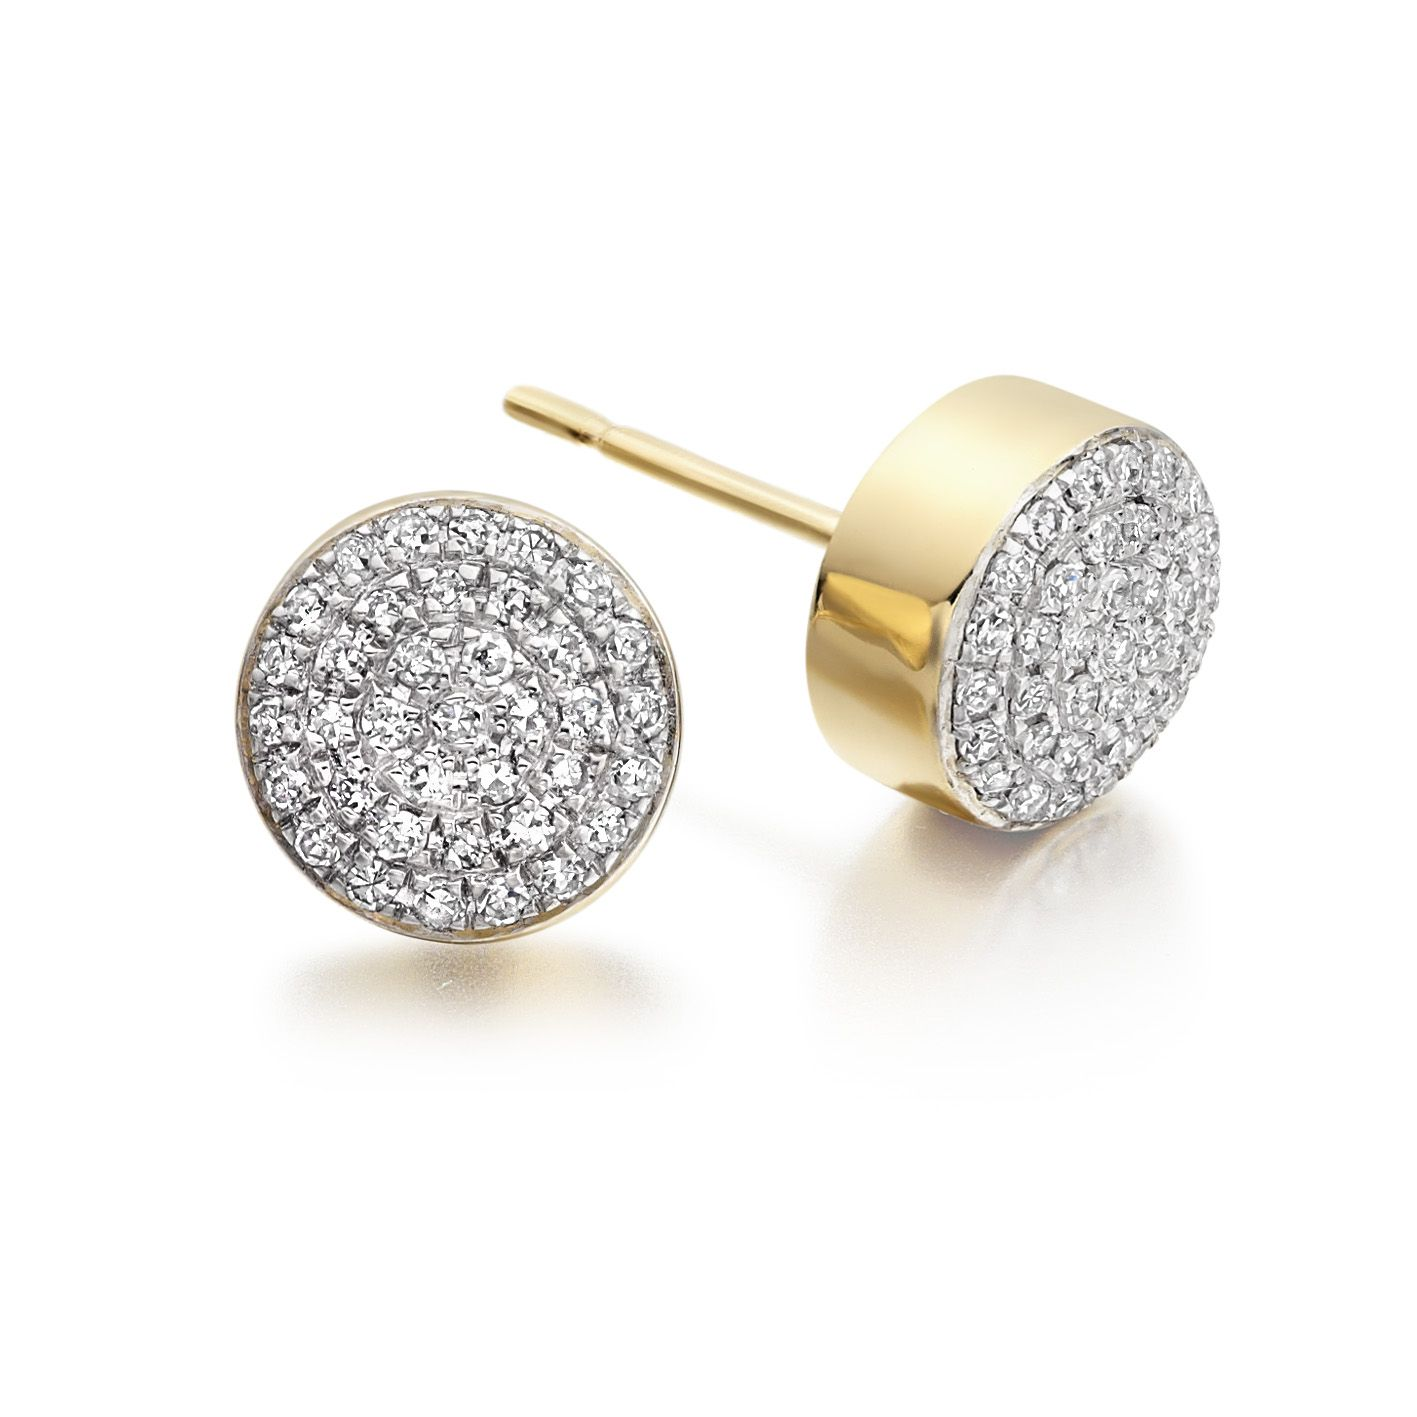 935fee758c2 The Pave Stud Earrings